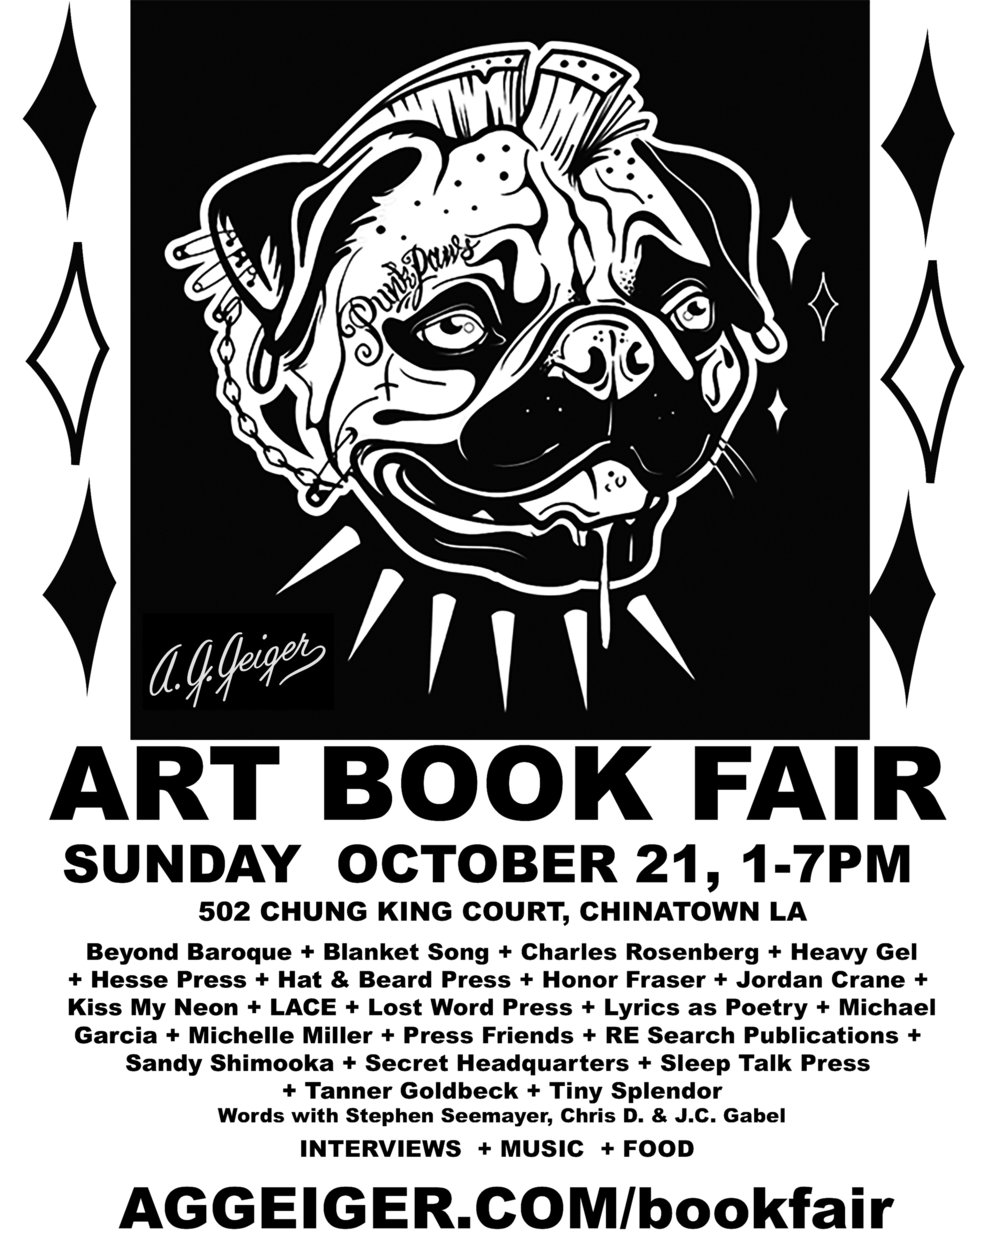 michael book fair invite copy.jpg